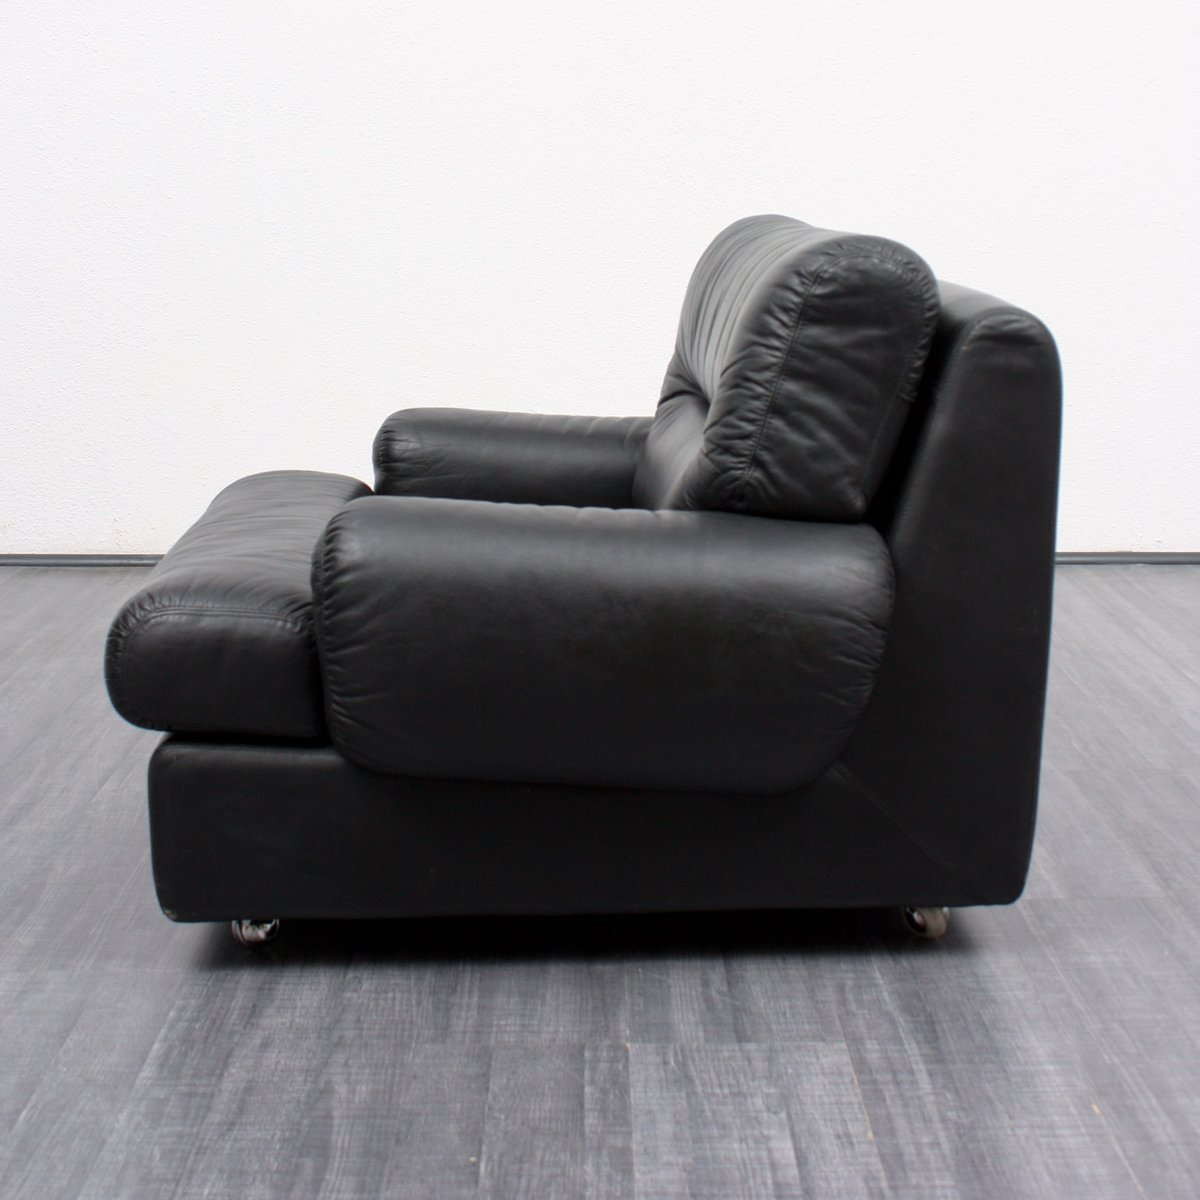 Black Leather Lounge Chair Vintage Black Leather Lounge Chair 1970s For Sale At Pamono